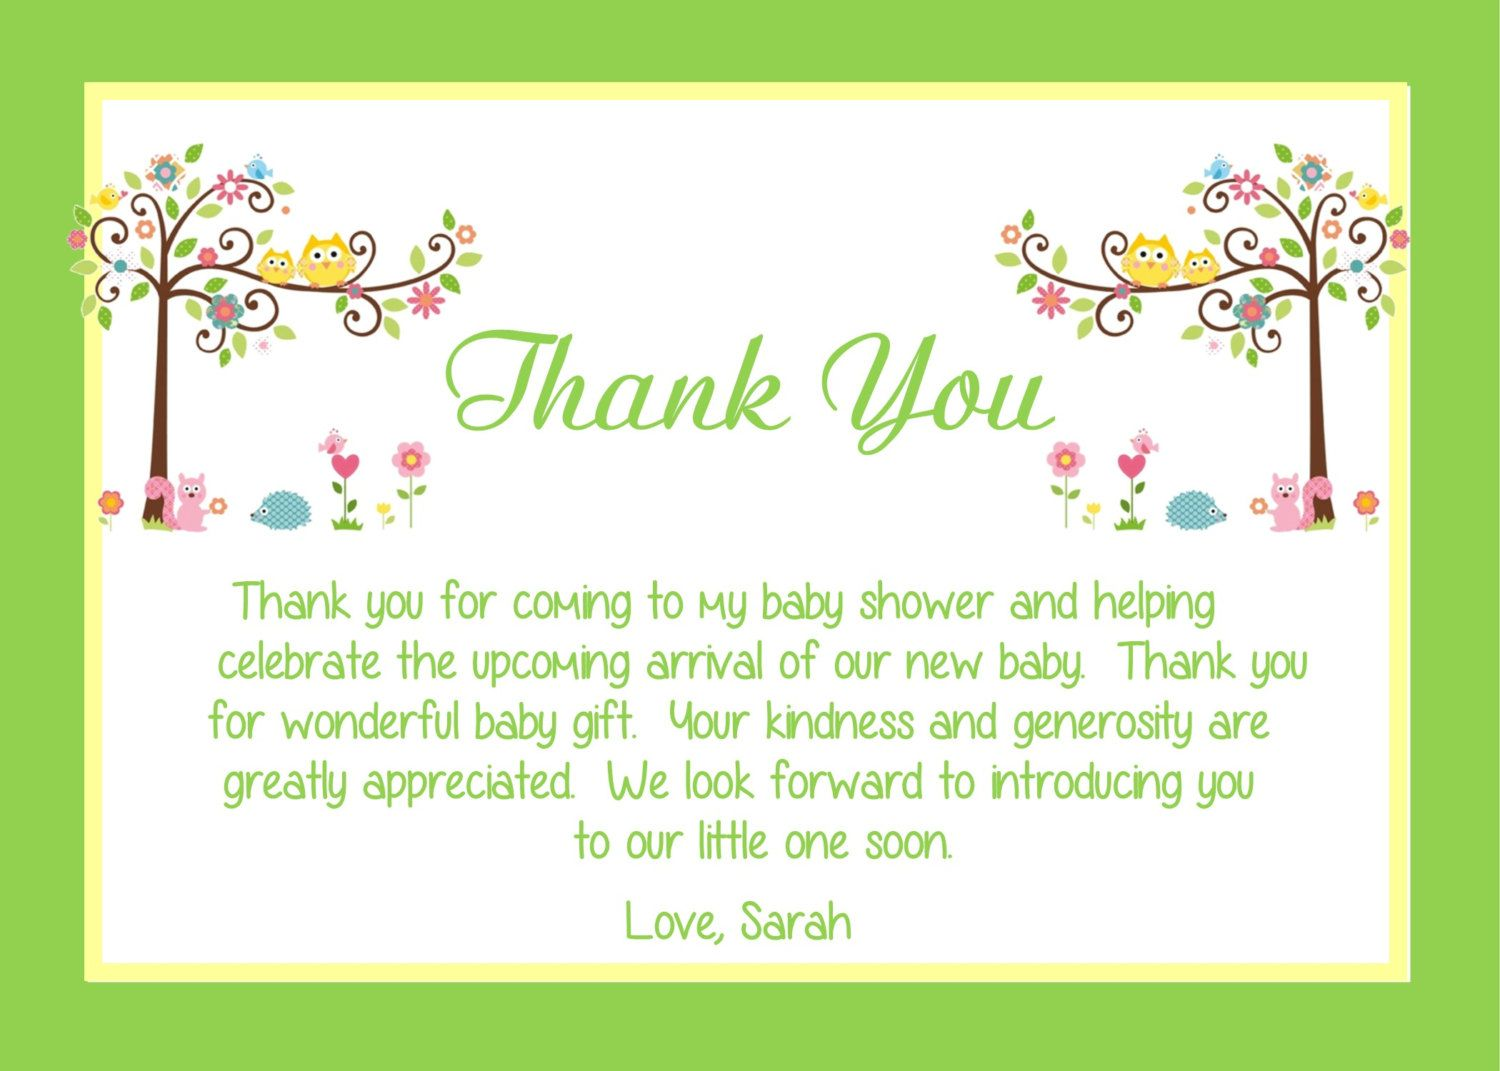 Baby shower thank you card wording ideas babysof thank you baby shower thank you card wording ideas babysof kristyandbryce Images